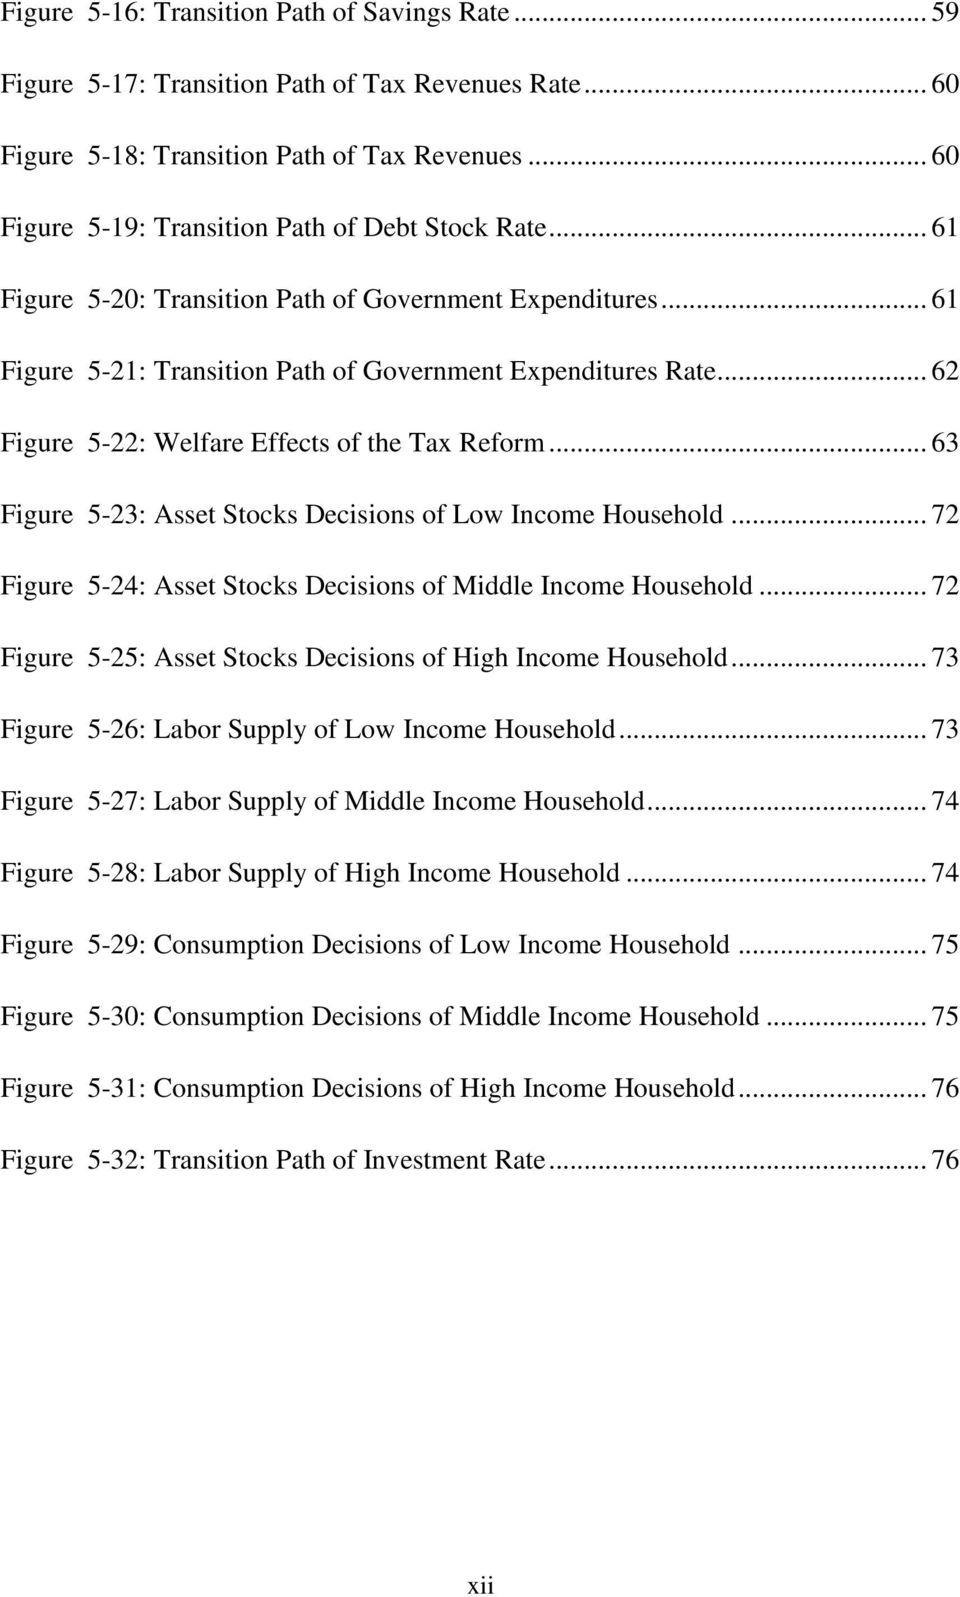 .. 62 Figure 5-22: Welfare Effects of the Tax Reform... 63 Figure 5-23: Asset Stocks Decisions of Low Income Household... 72 Figure 5-24: Asset Stocks Decisions of Middle Income Household.